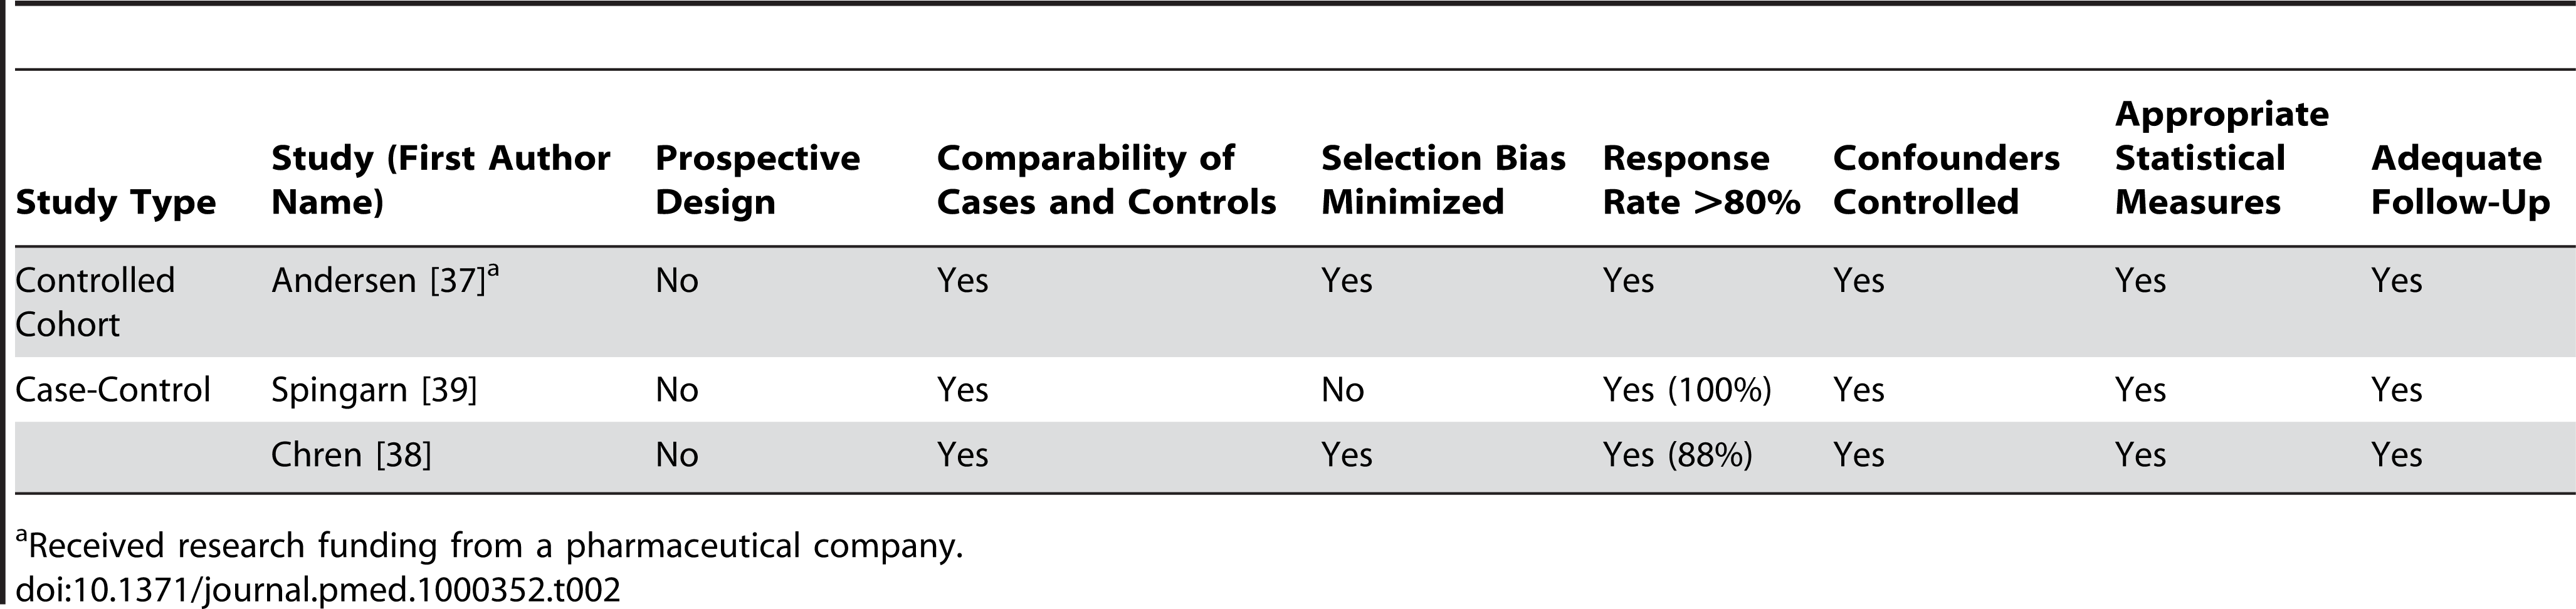 Quality appraisal of included studies: controlled cohort and case-control studies.